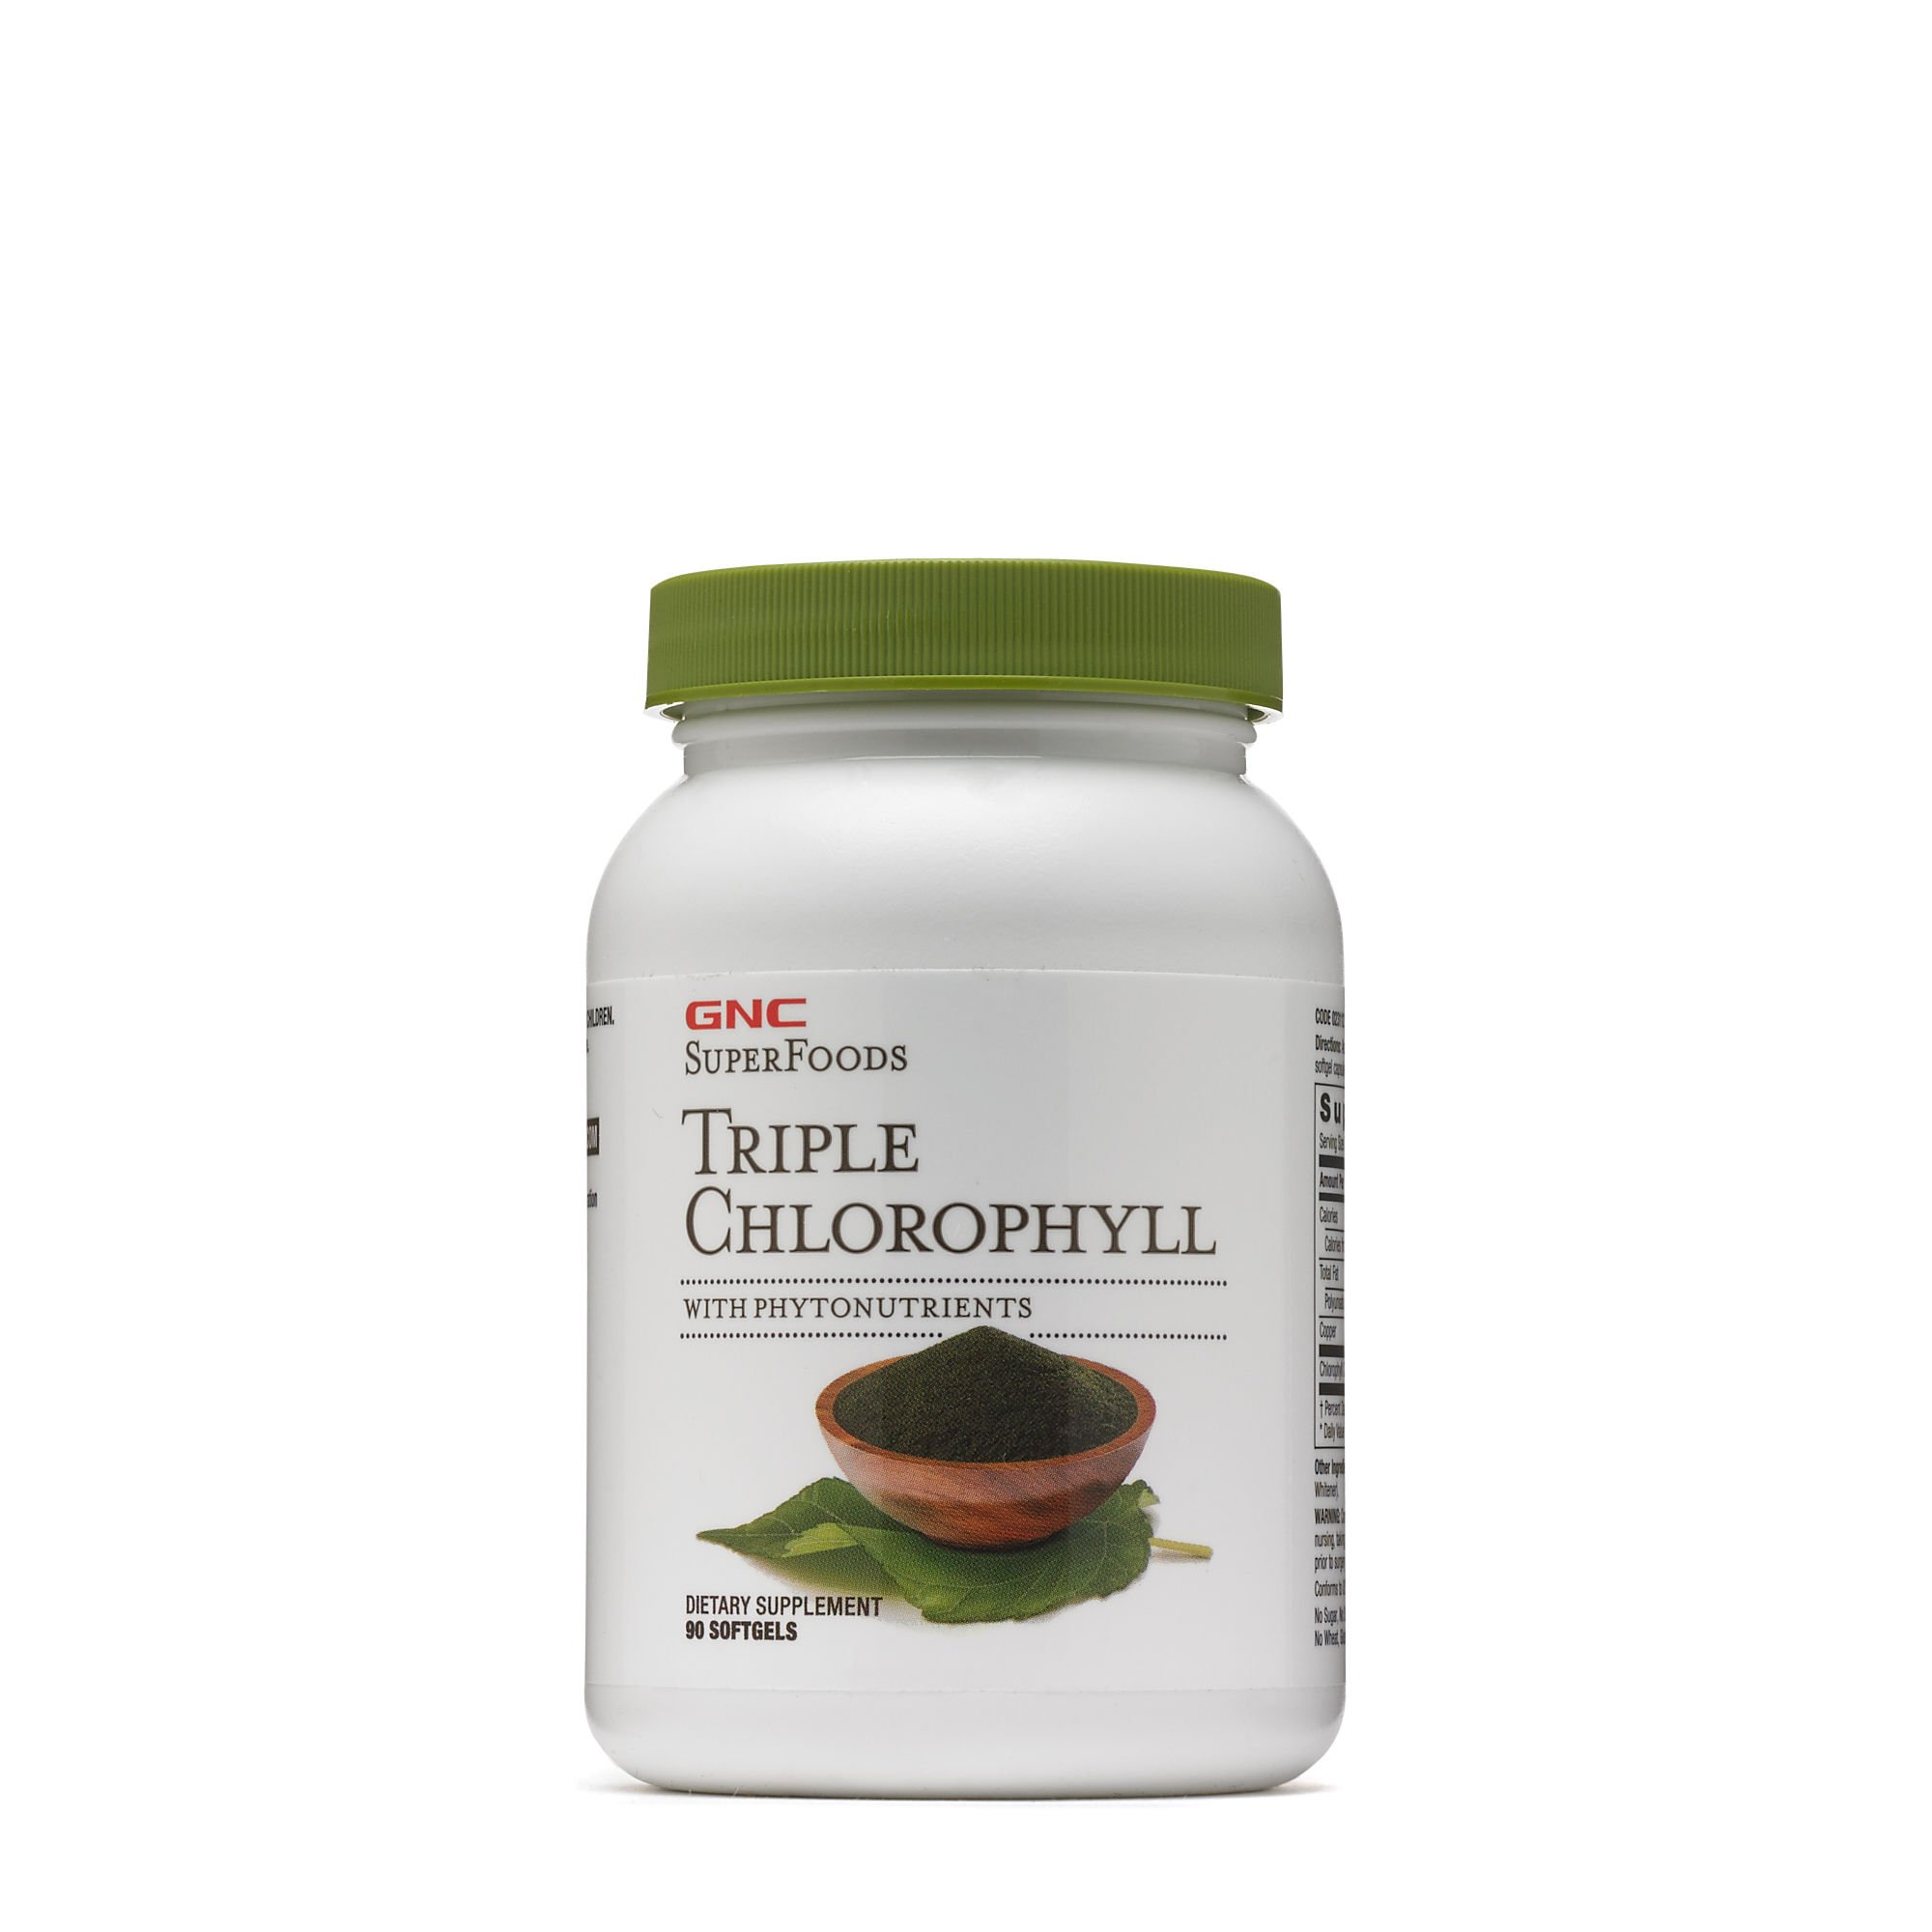 GNC Superfoods Triple Chlorophyll, 90 Softgels